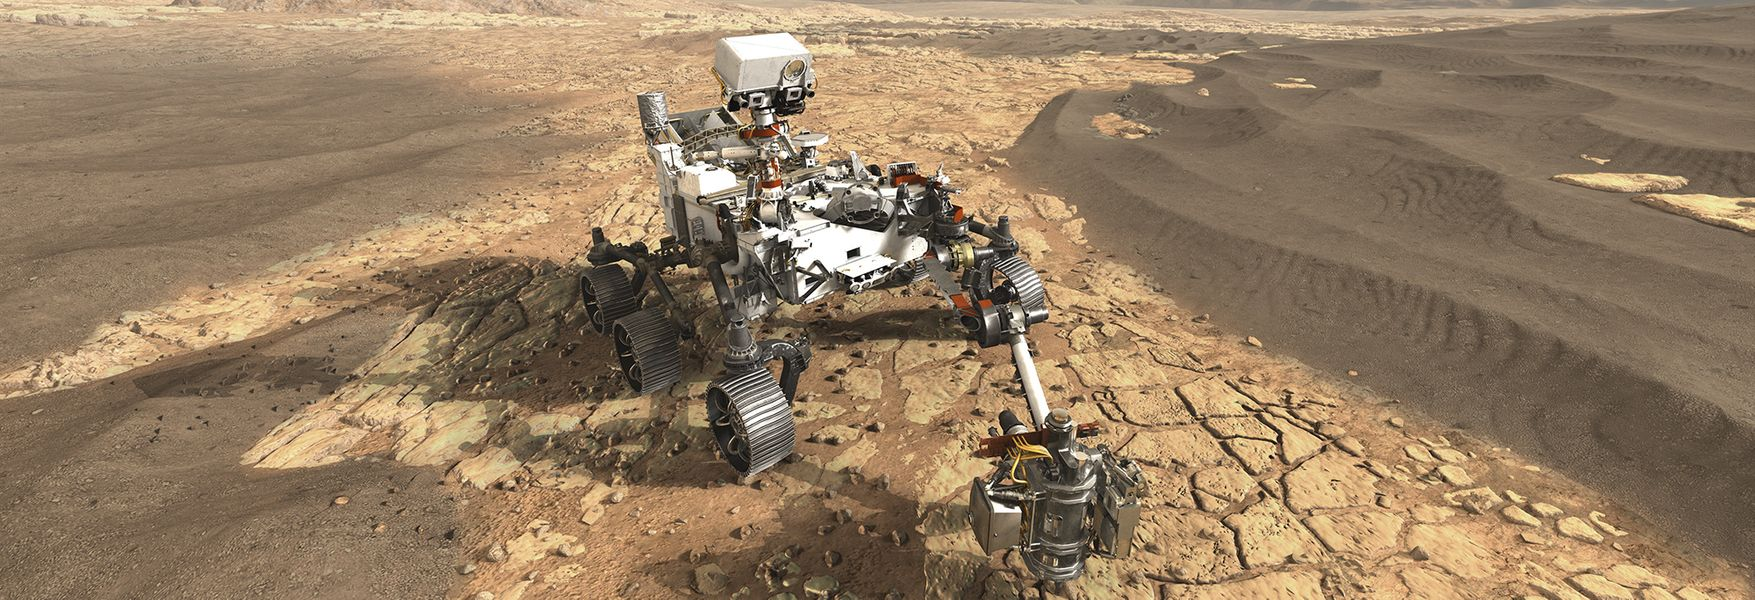 Robots on Mars: The New Generation of Geologists - OpenMind